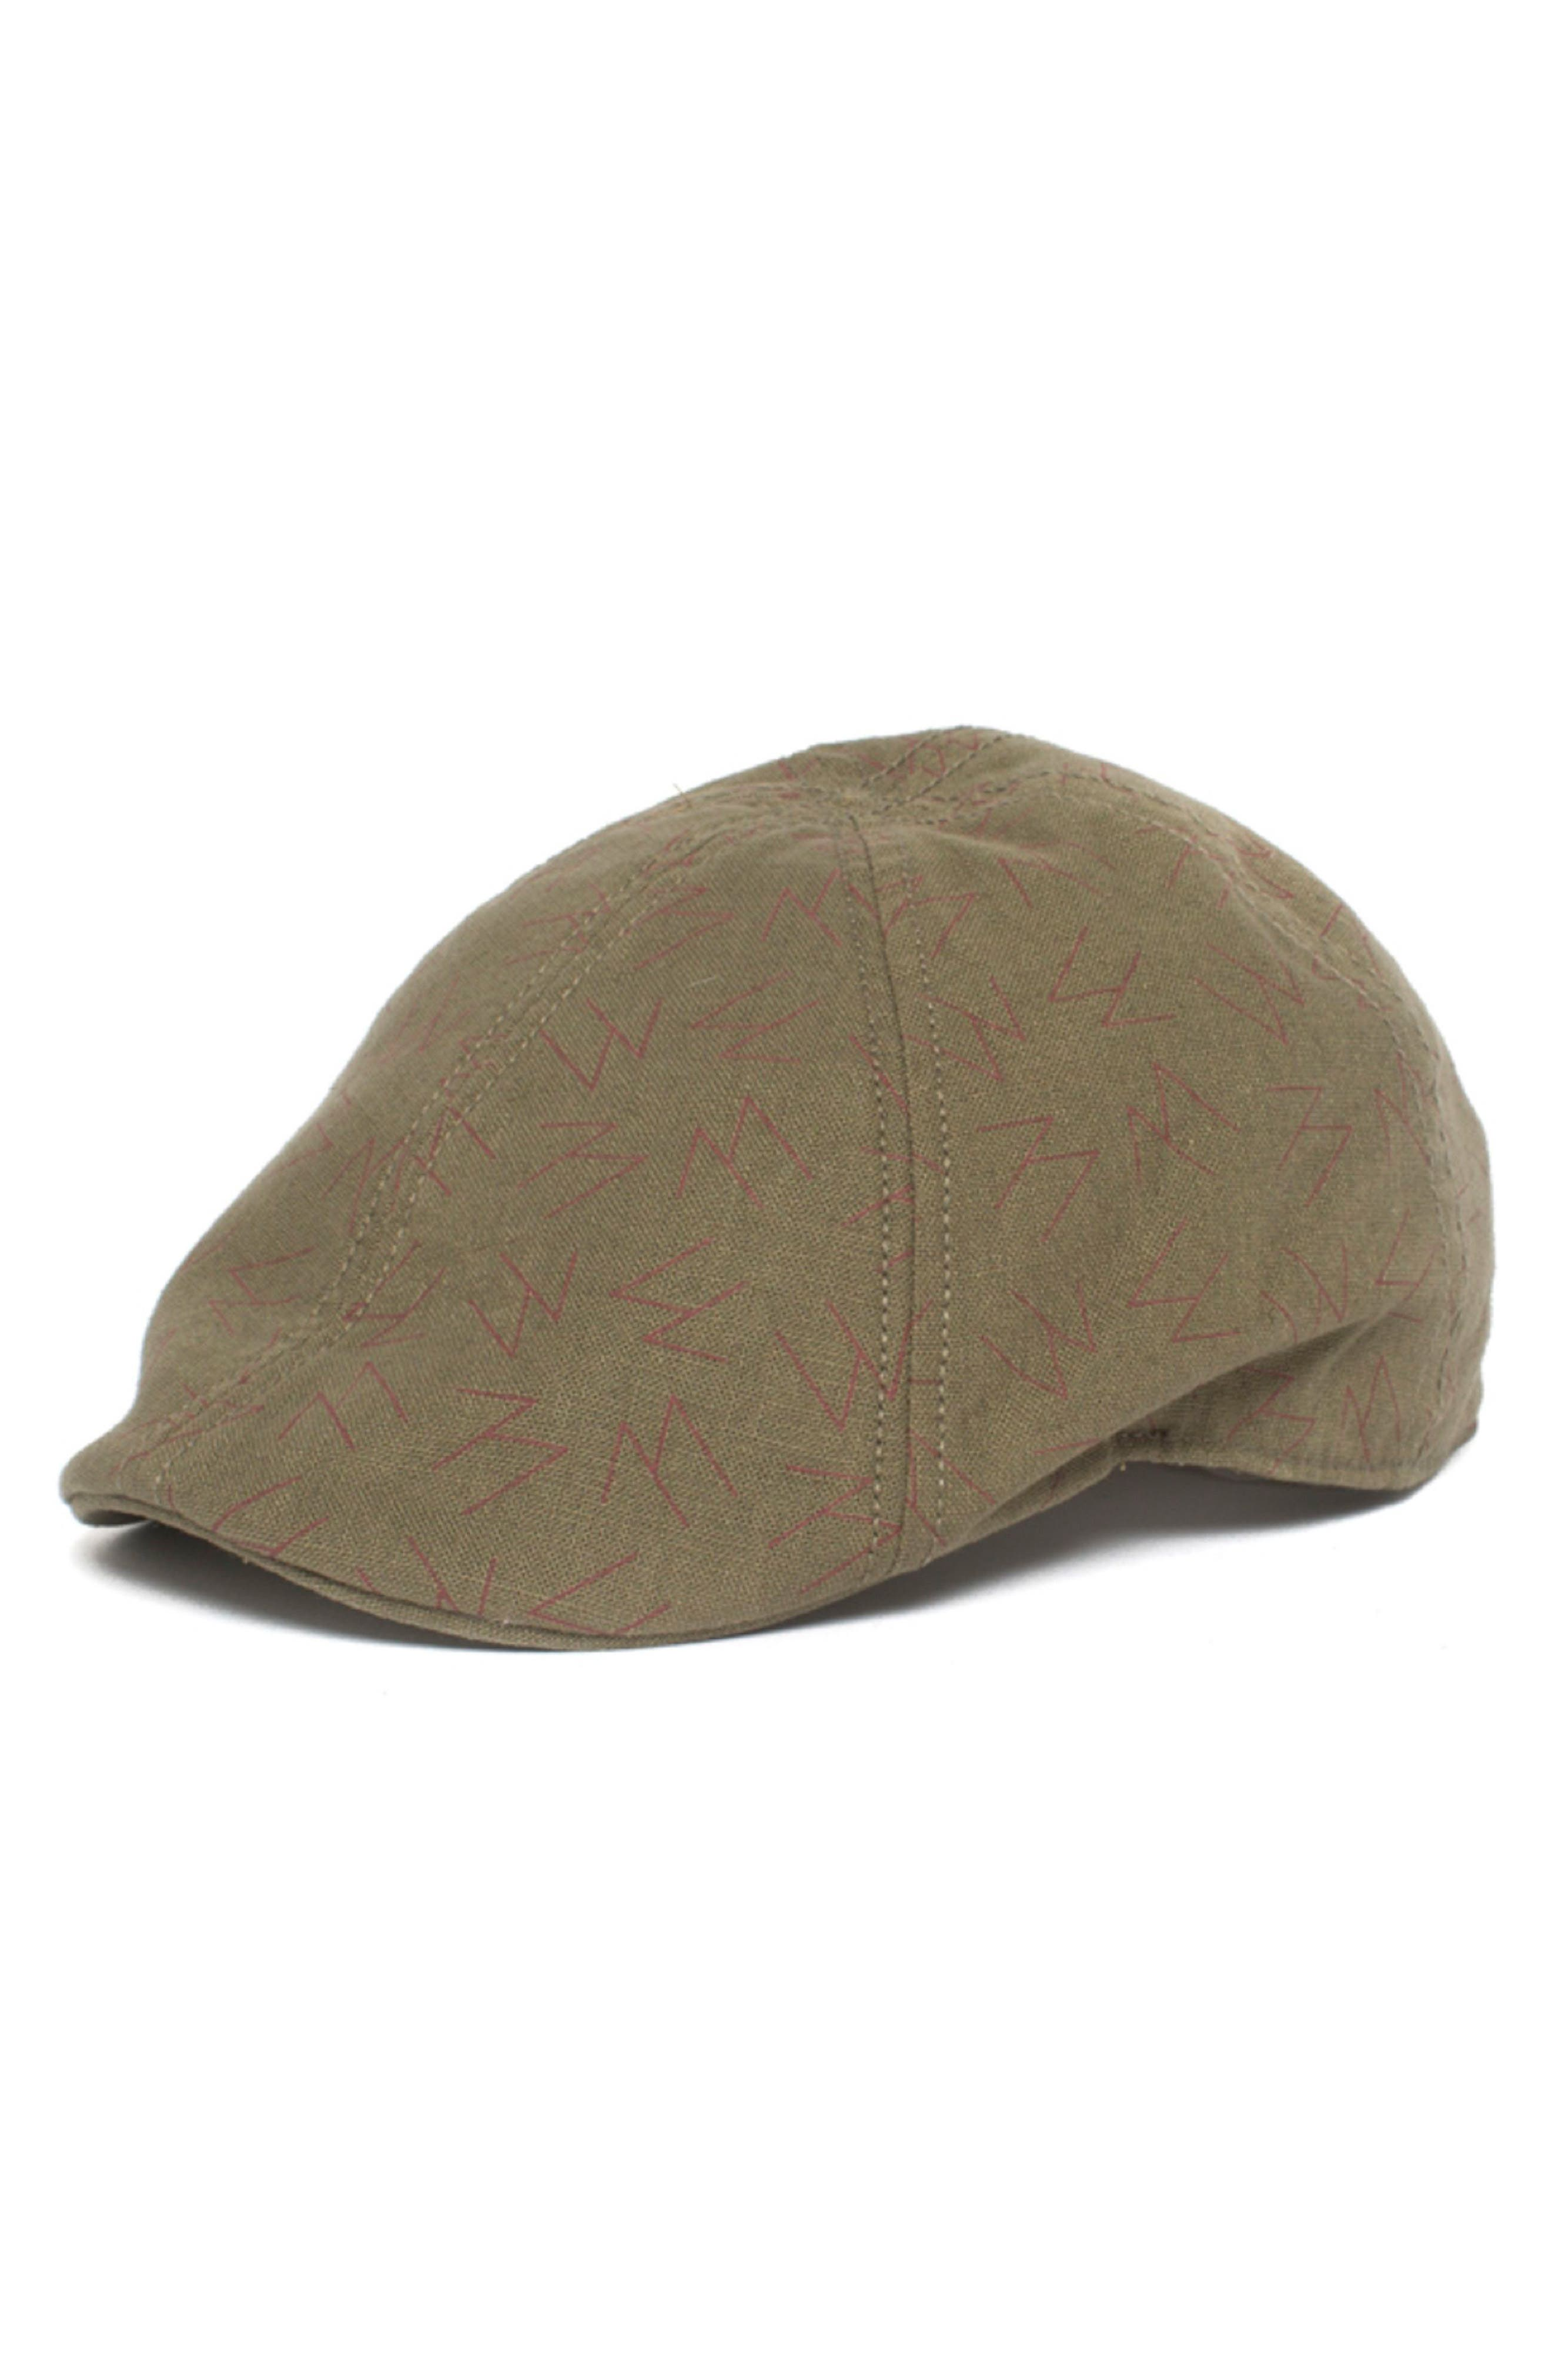 High Warrior Driving Cap,                         Main,                         color, Olive